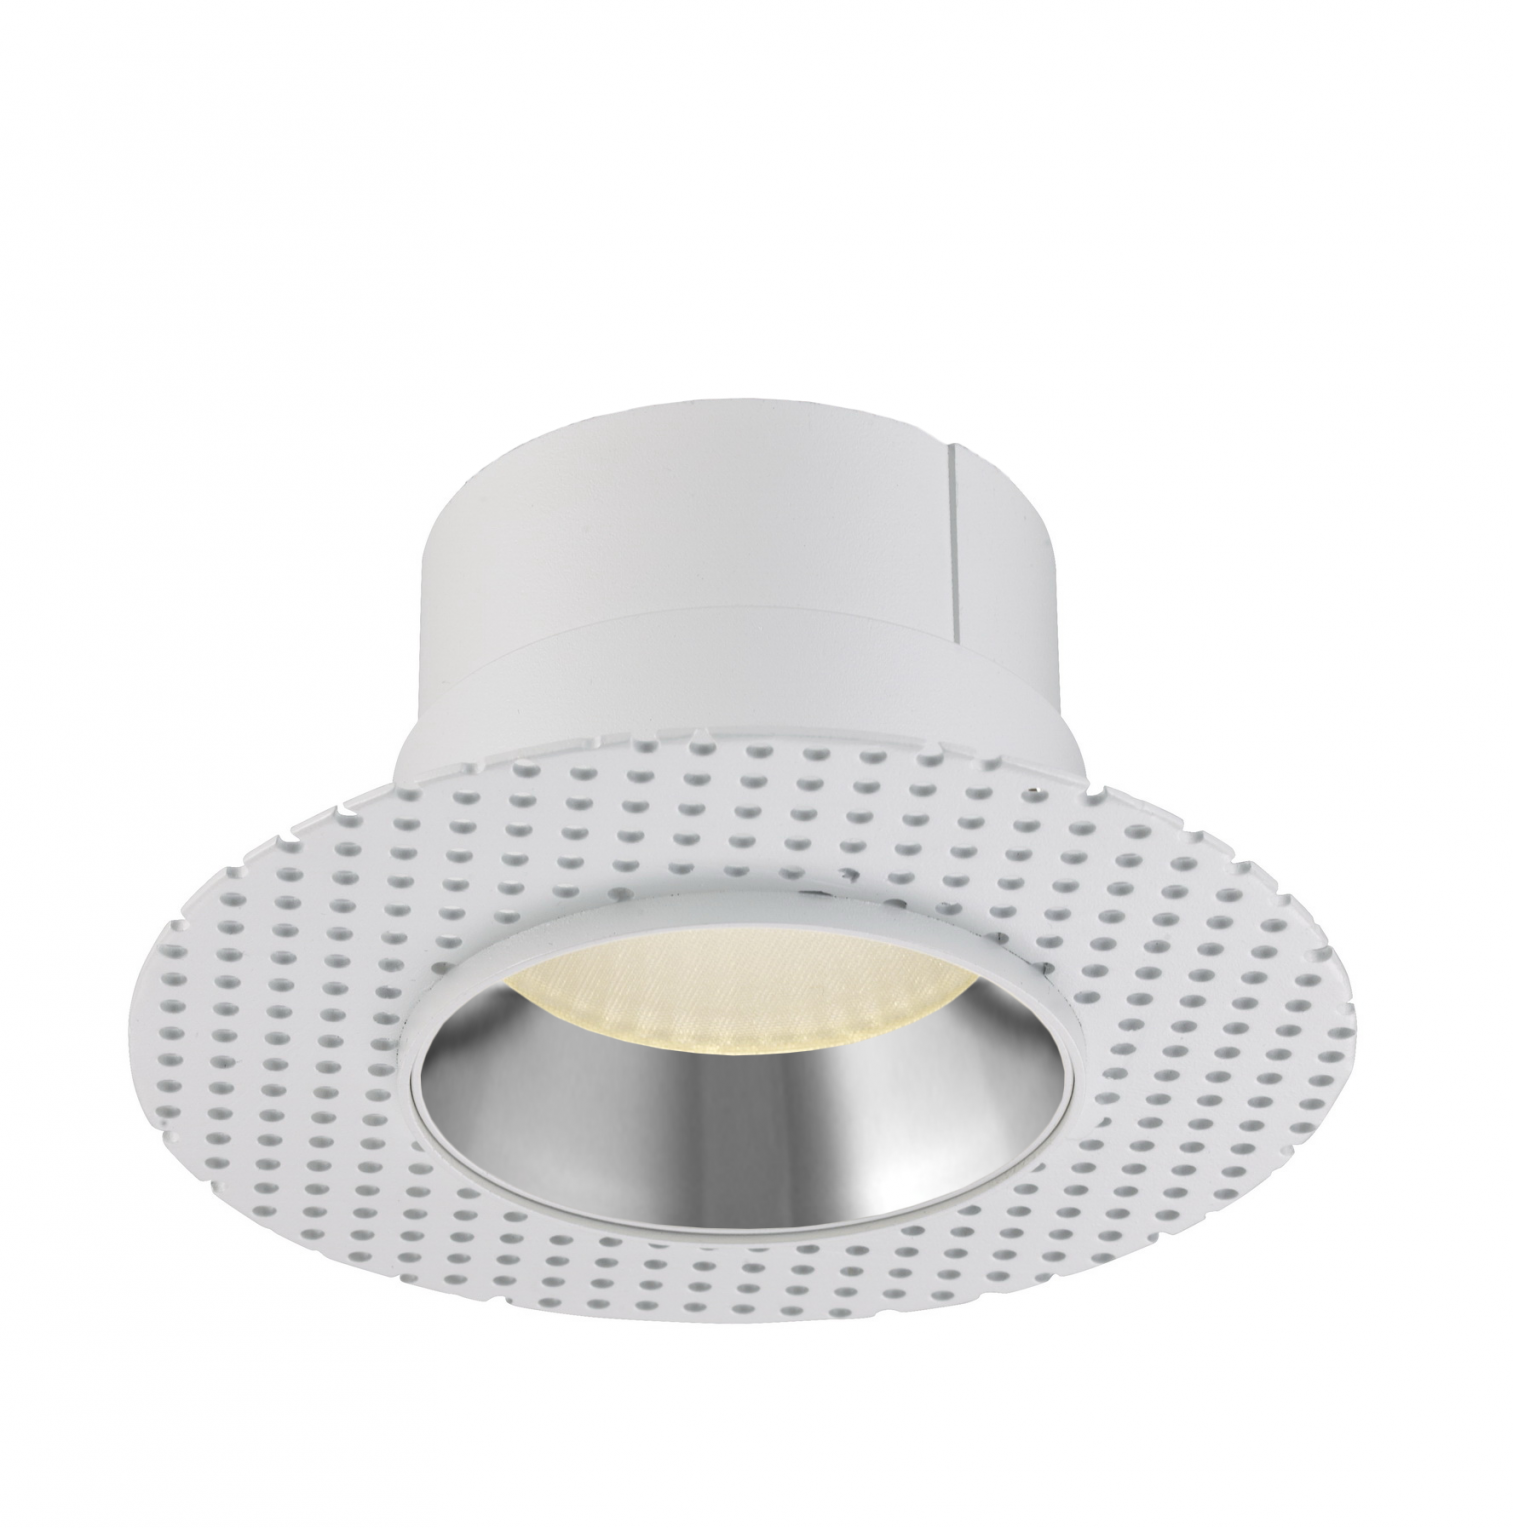 Alcon lighting 14042 rr architectural 1 inch round trimless alcon lighting 14042 rr architectural 1 inch round trimless adjustable airtight new construction ic housing led recessed light fixture alconlighting arubaitofo Gallery